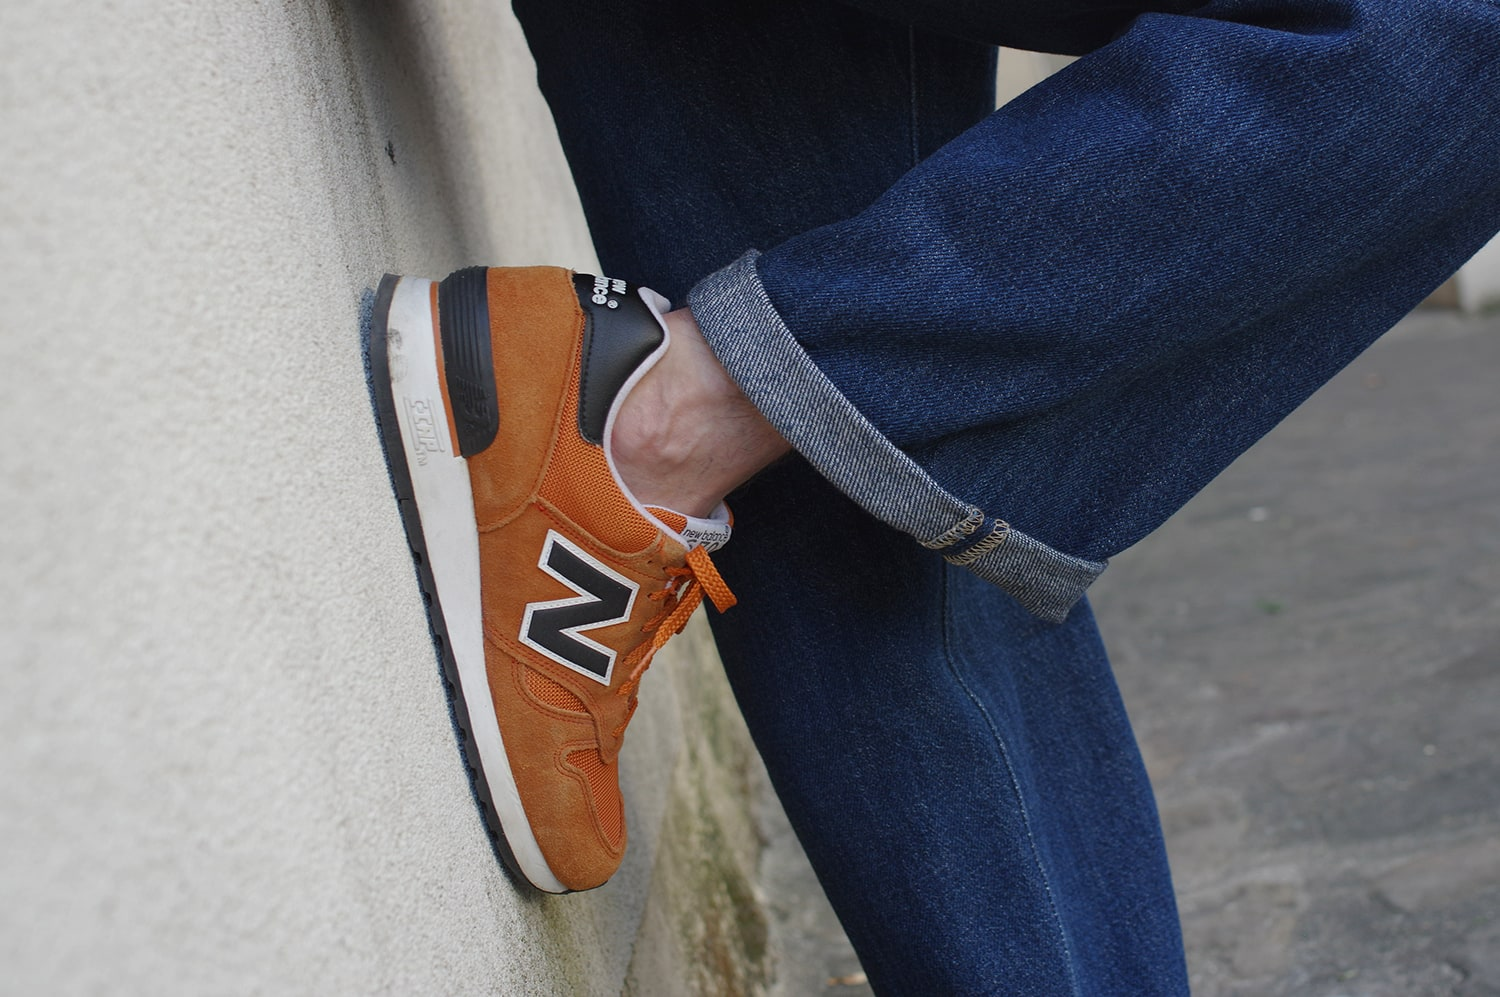 New balance 670 Made in UK -orange color